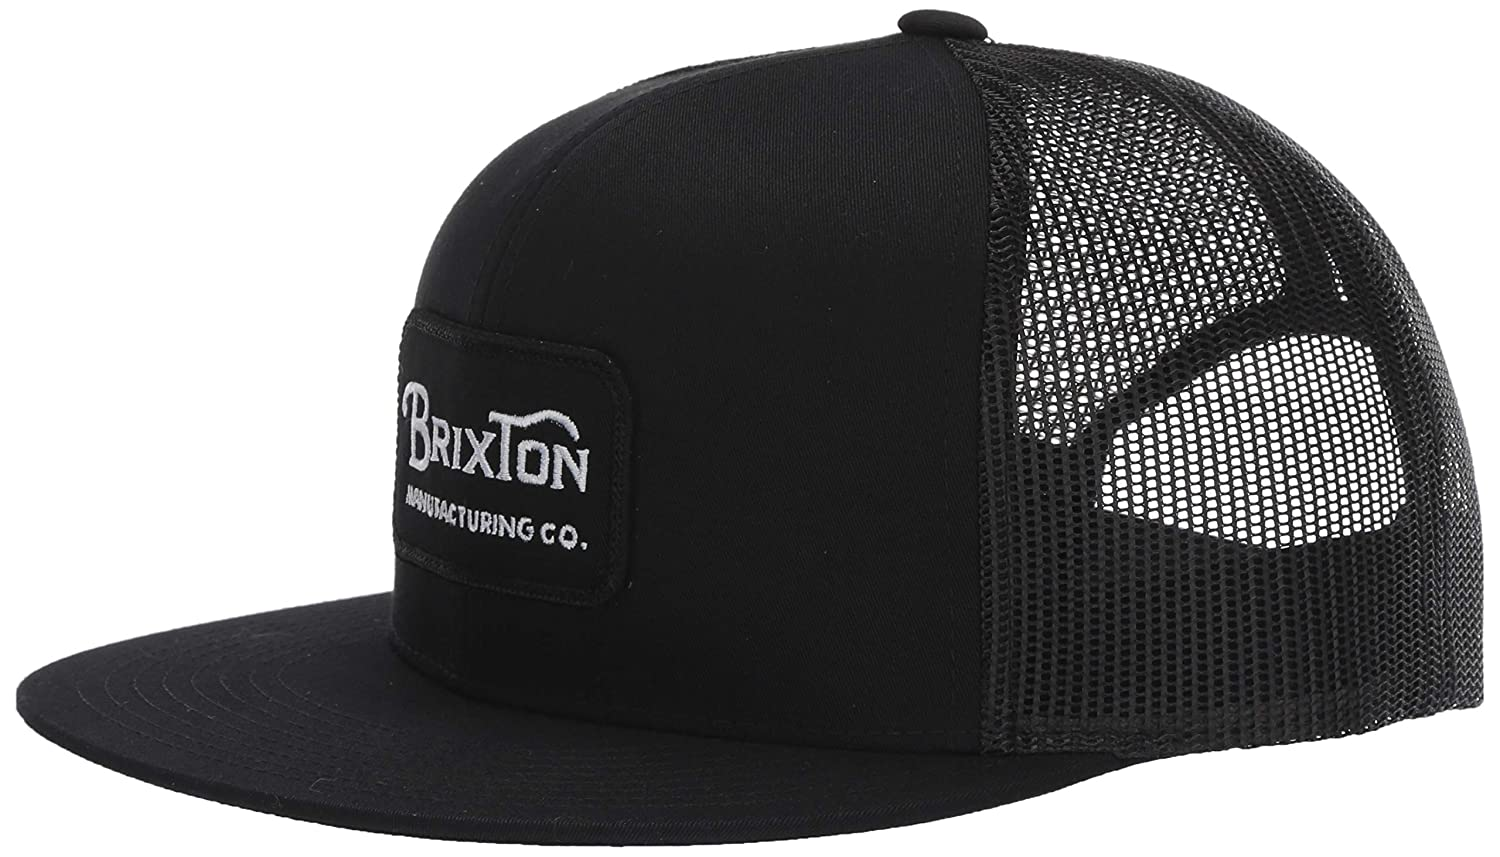 size 40 92a45 ae777 Amazon.com  Brixton Men s Grade HIGH Profile Adjustable MESH HAT, Black,  O S  Clothing